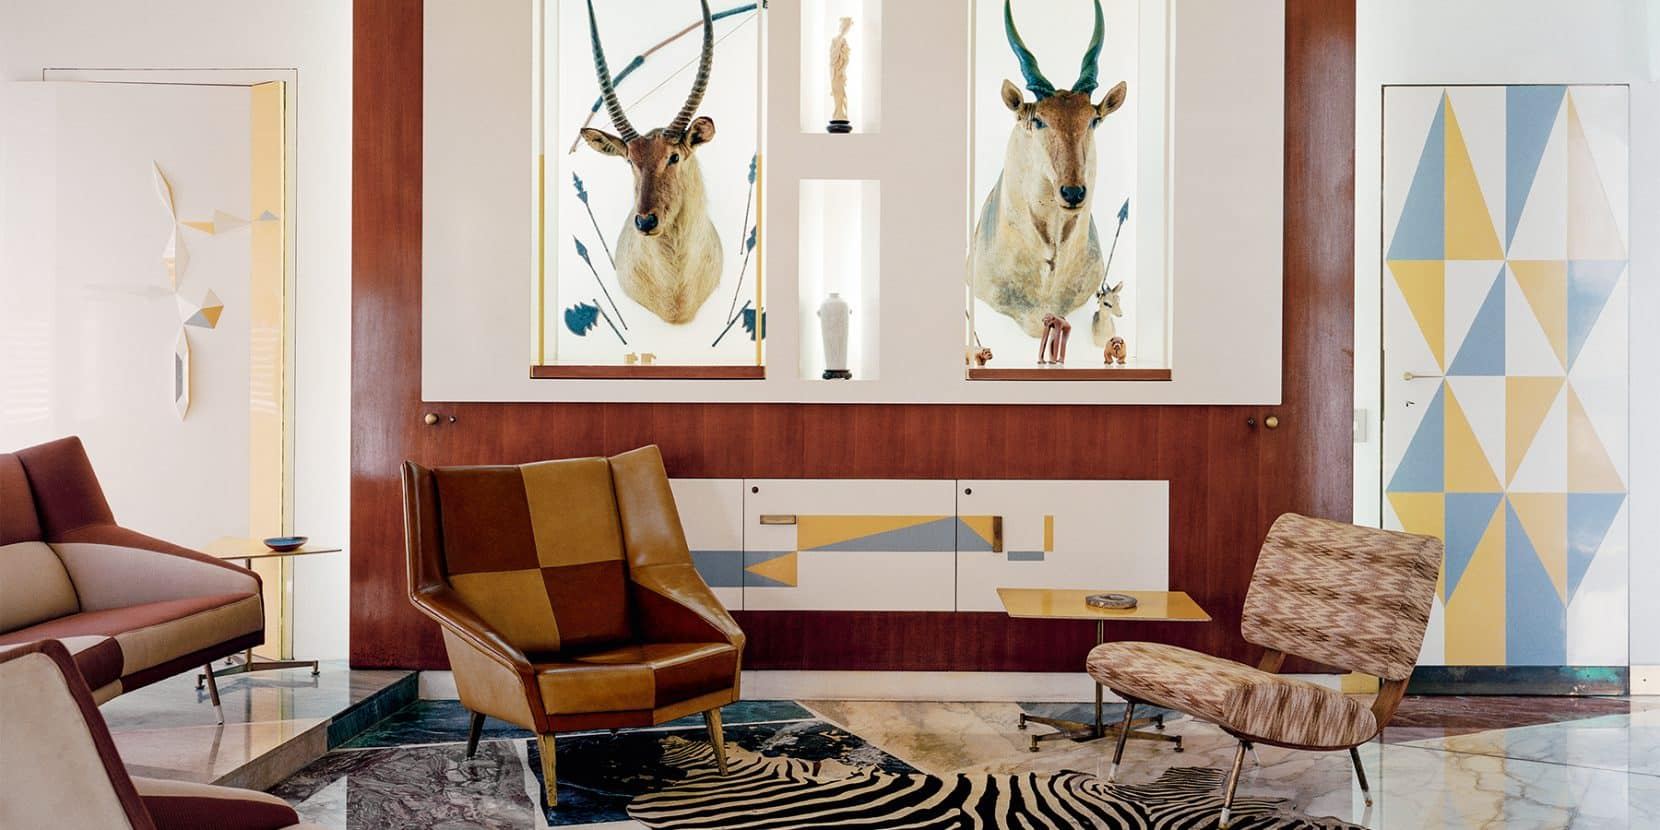 Two antelope heads mounted in the study at Villa Planchart, as seen in the book Gio Ponti, offered by Taschen